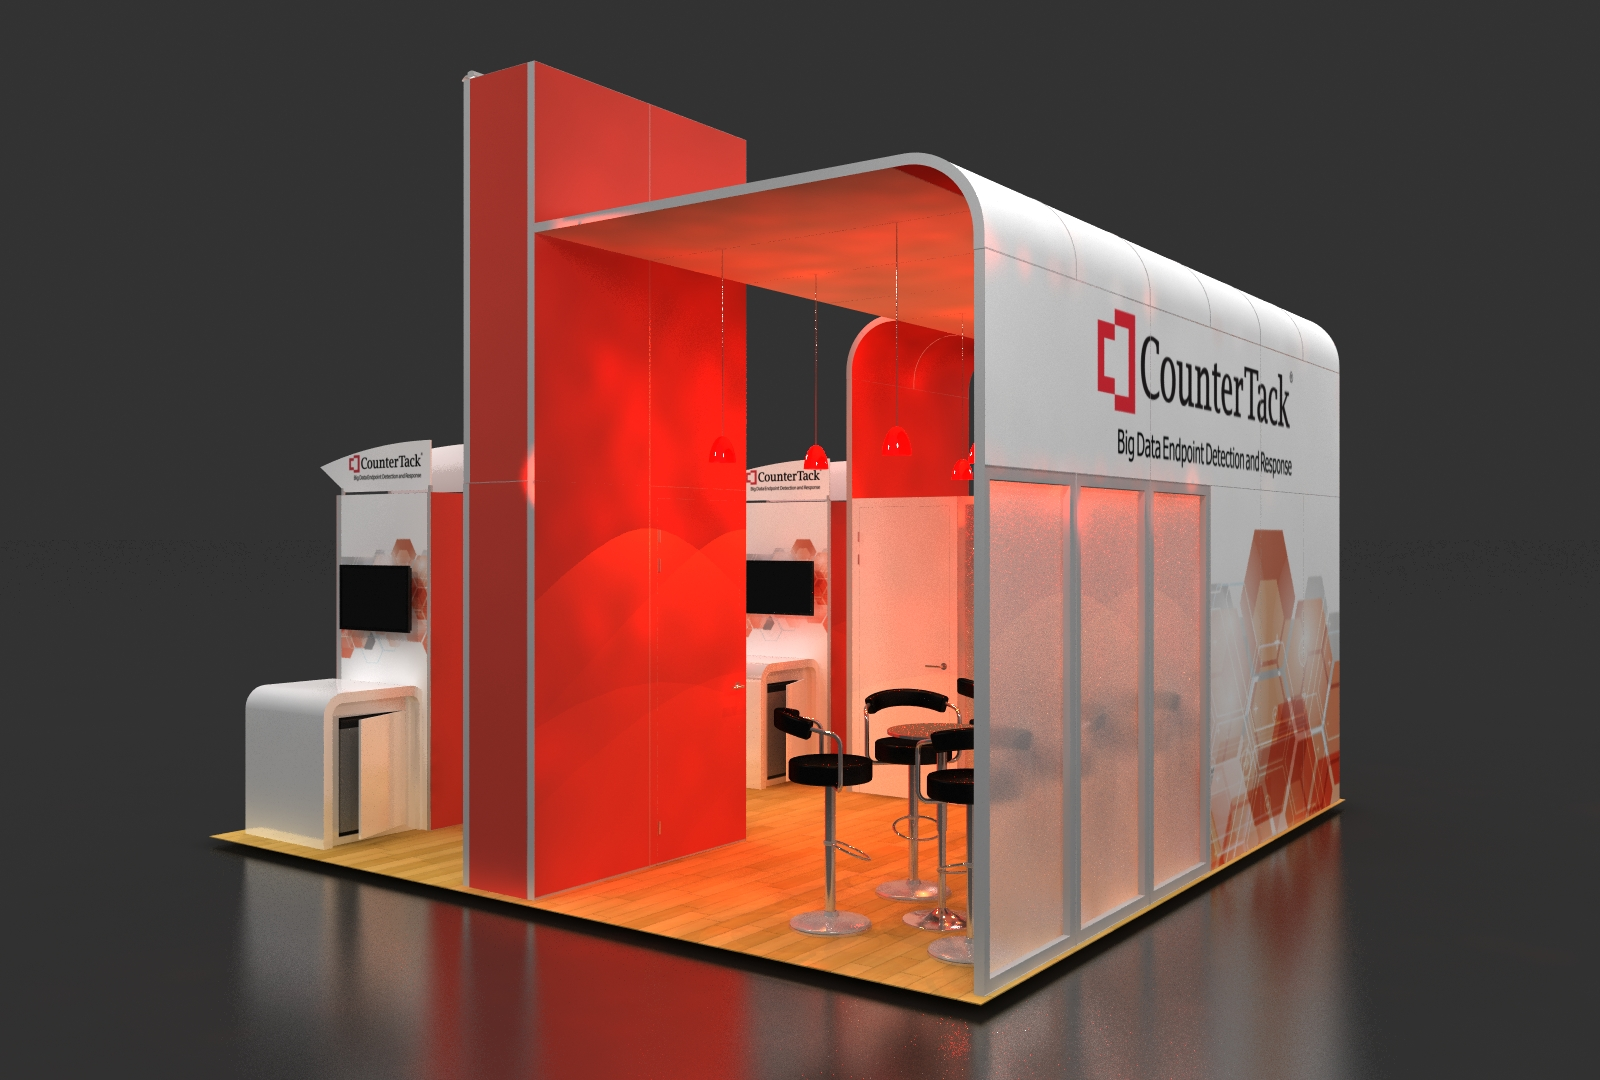 Trade show booths at RSA Conference